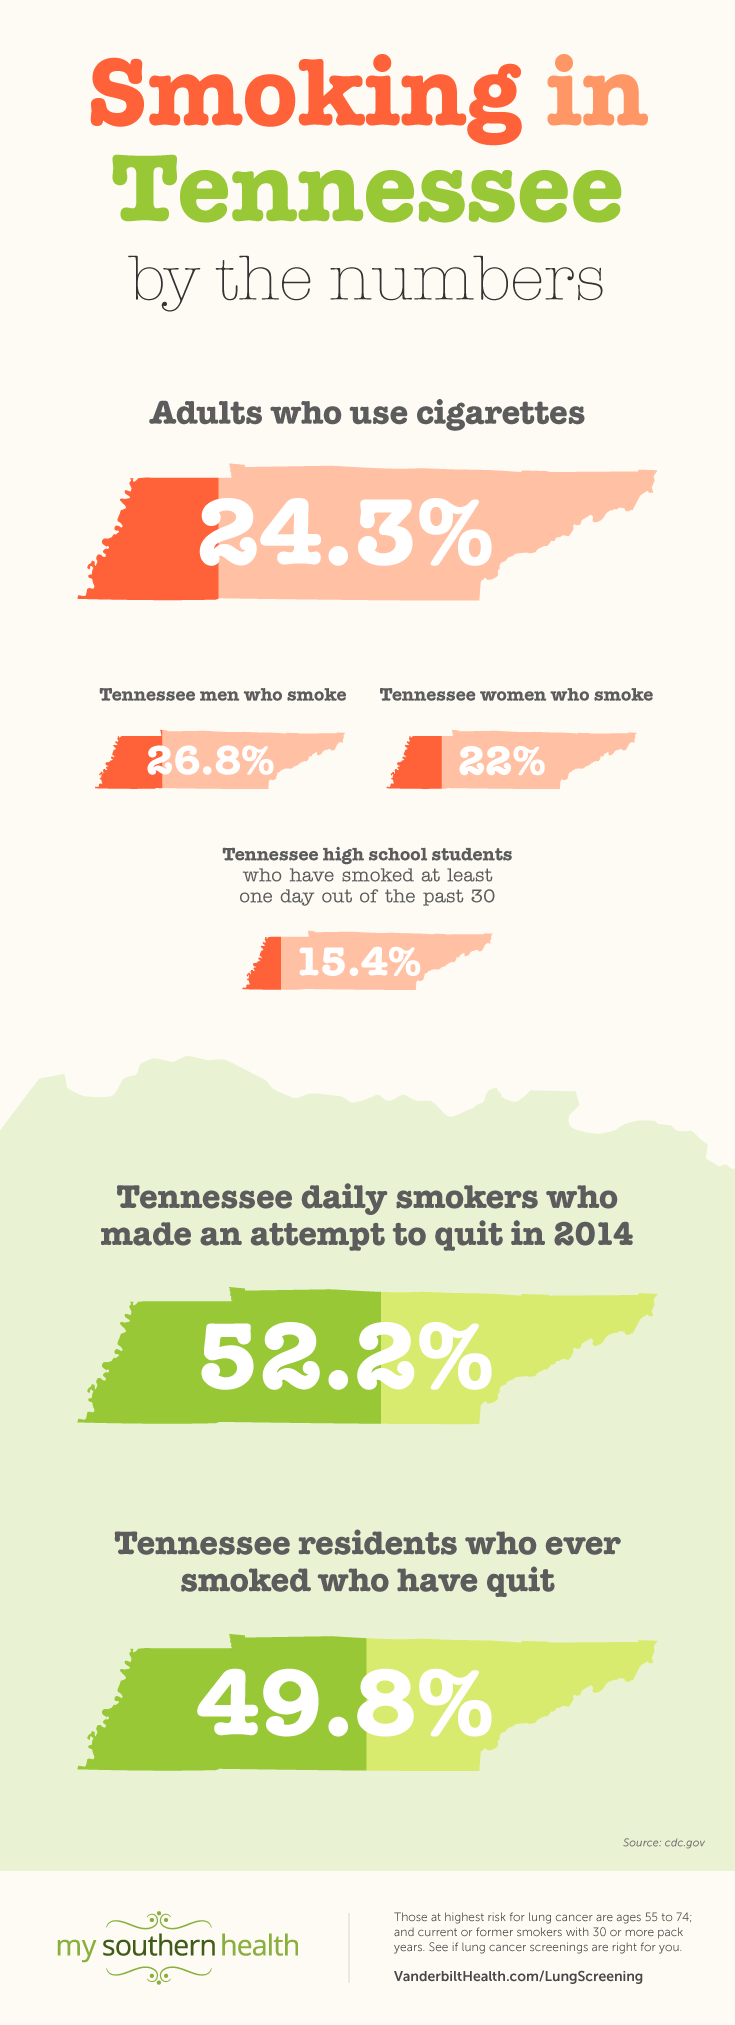 900-2898-MSH-TN-Cigarettes-Numbers-Infographic-MK-FINAL